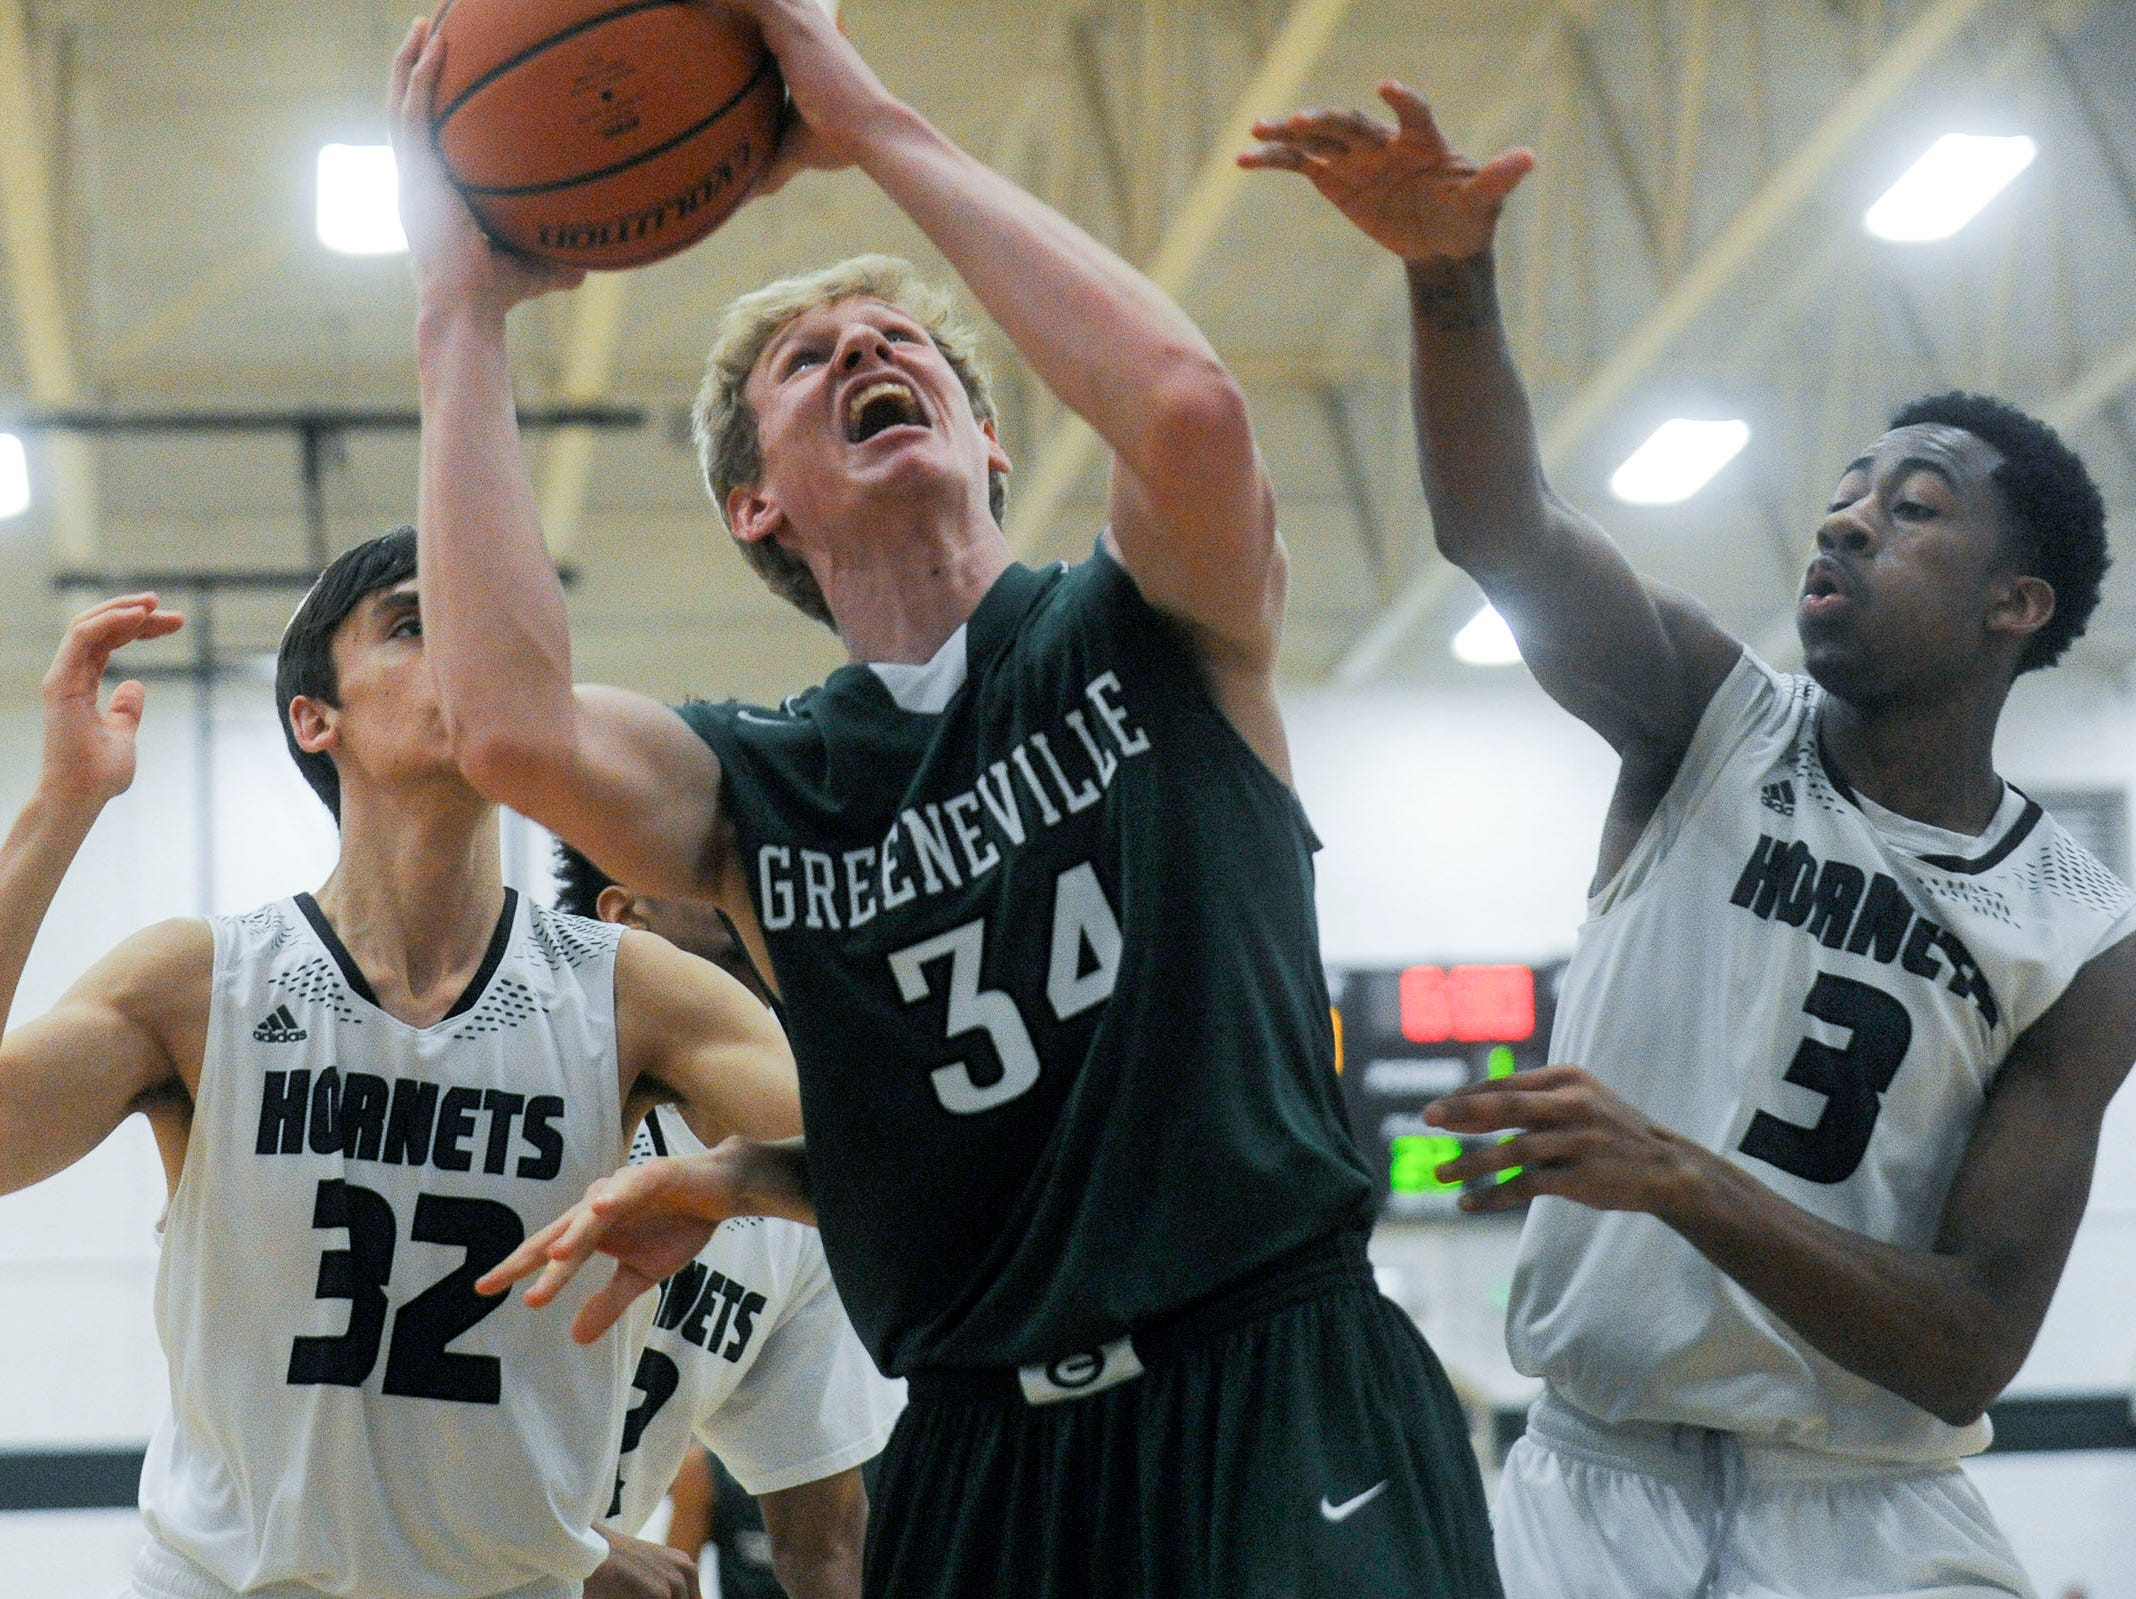 Carter's Austin Hayes and Jordan Bowden (3) try to block Greeneville's Thomas Burkey (34) as he goes up for a shot  during the Class AA state sectional game where Carter defeated Greeneville  85-71 at Carter high school Tuesday, Mar. 3, 2015.